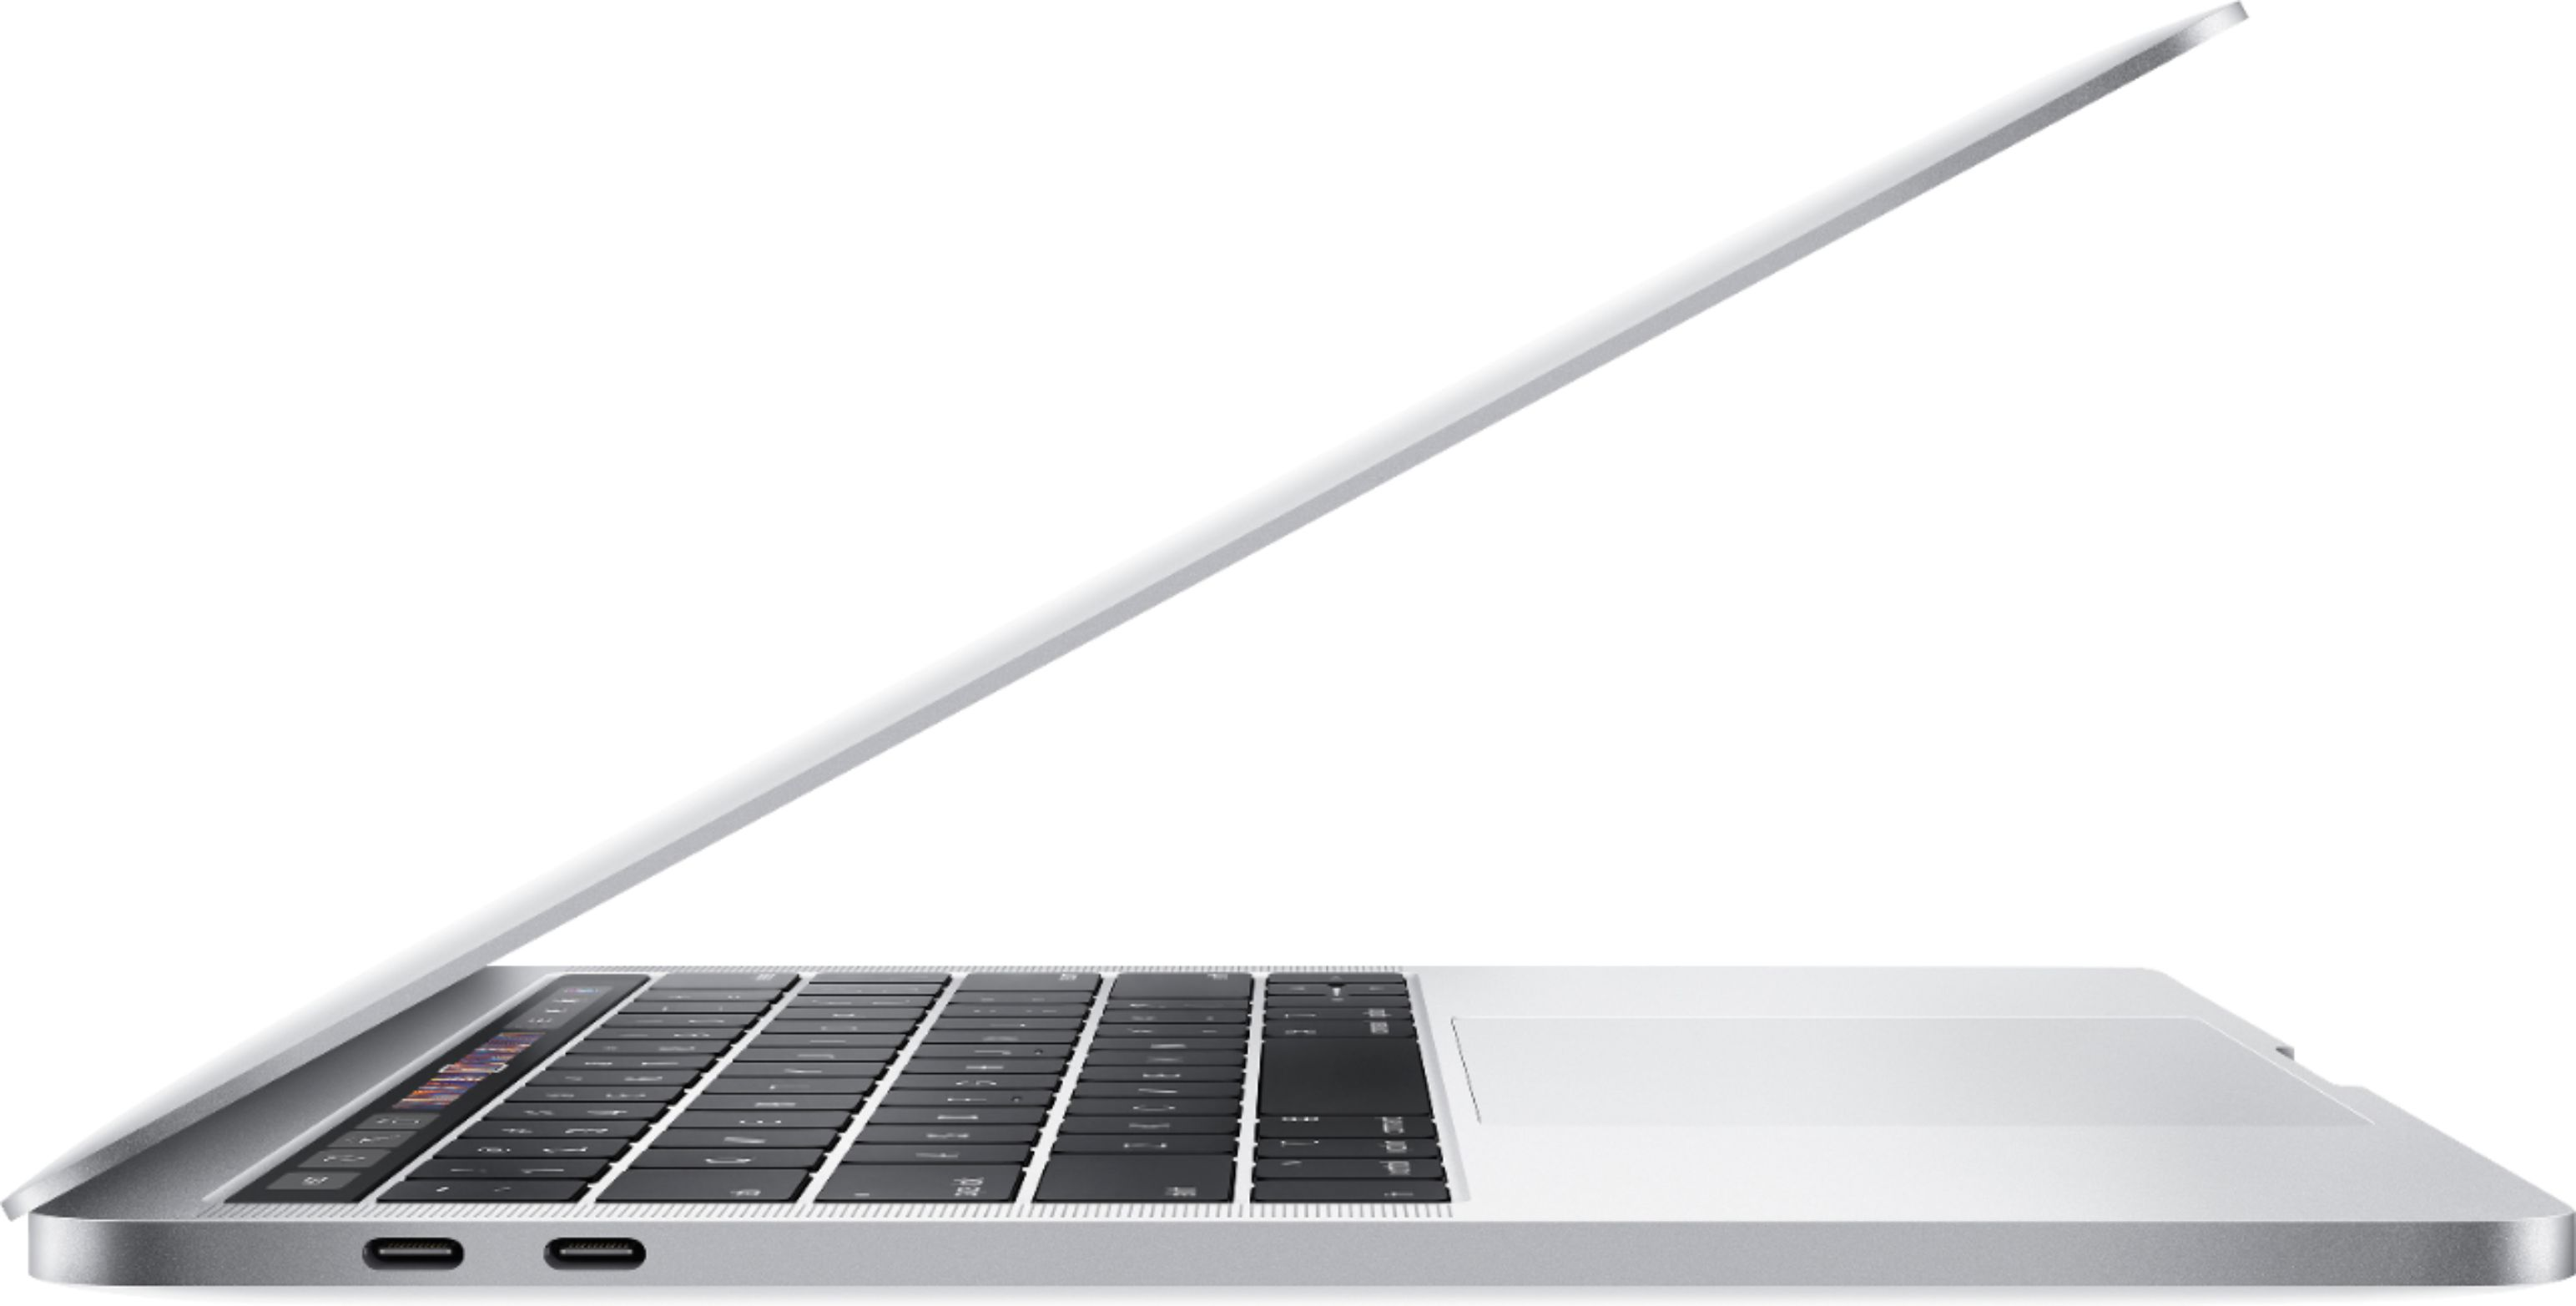 """Alt View Zoom 11. Apple - MacBook Pro - 13"""" Display with Touch Bar - Intel Core i5 - 16GB Memory - 256GB SSD - Silver."""